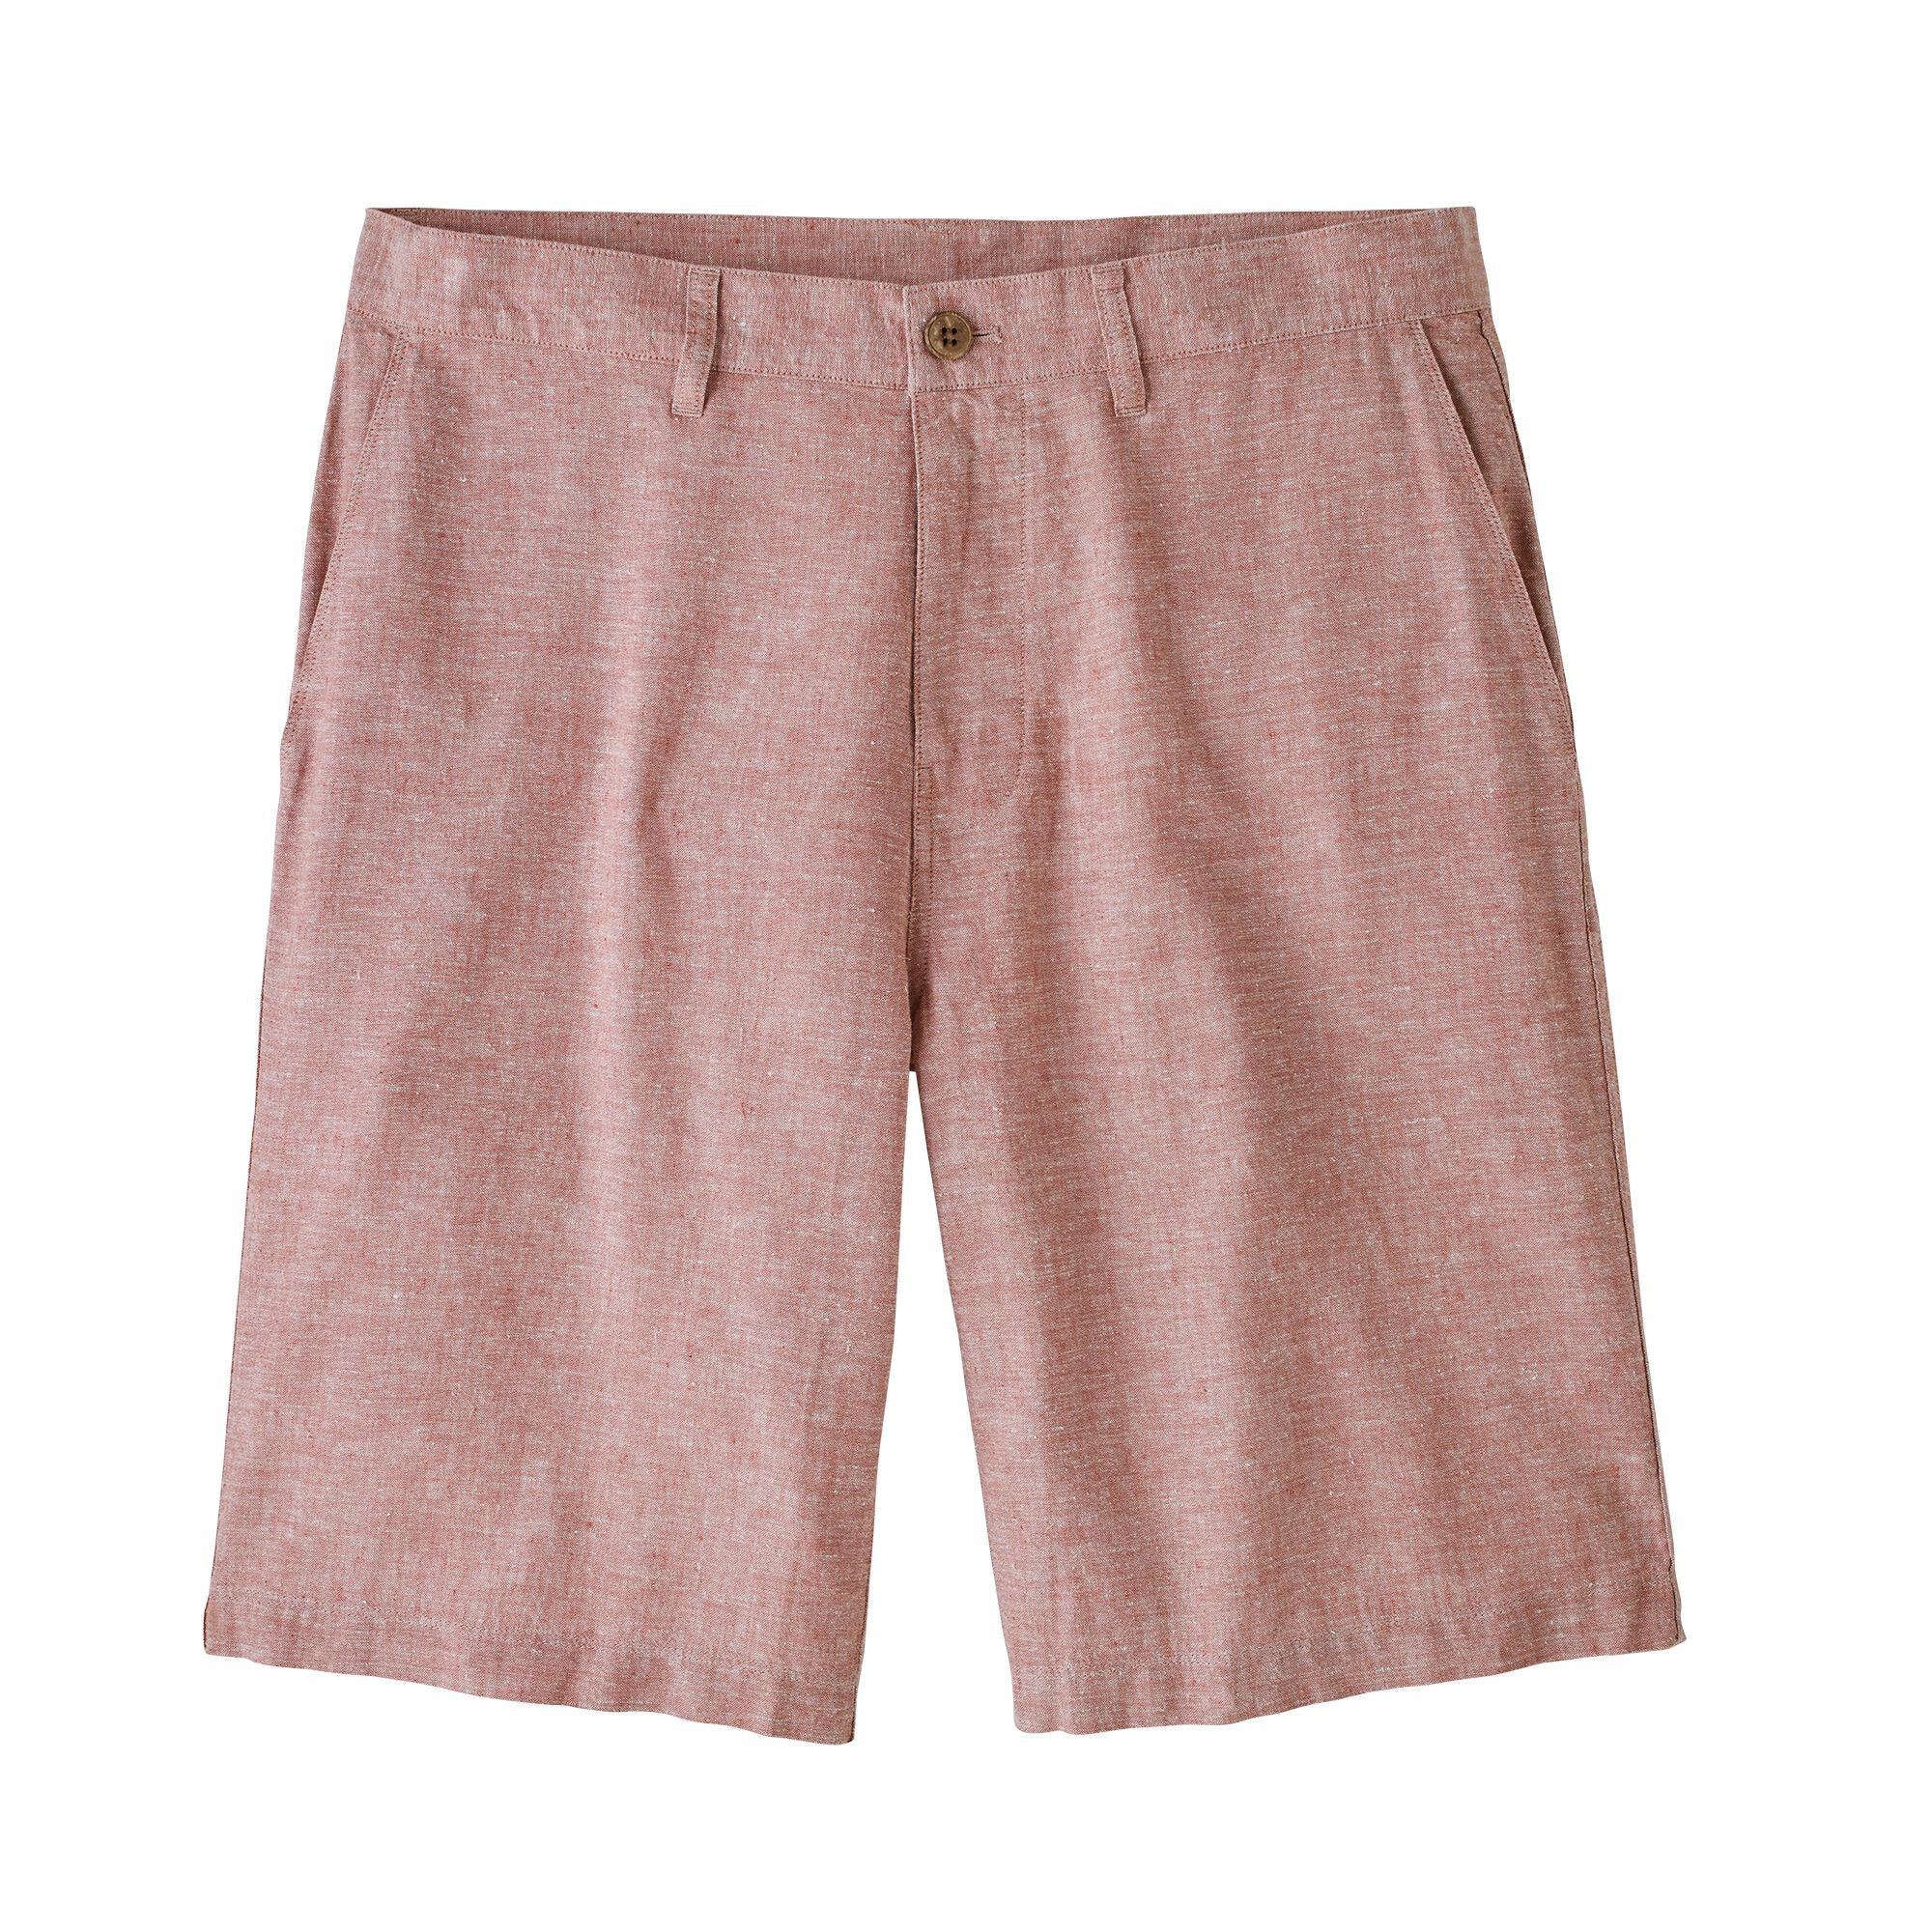 Shorts Hombre Back Step Shorts - 10